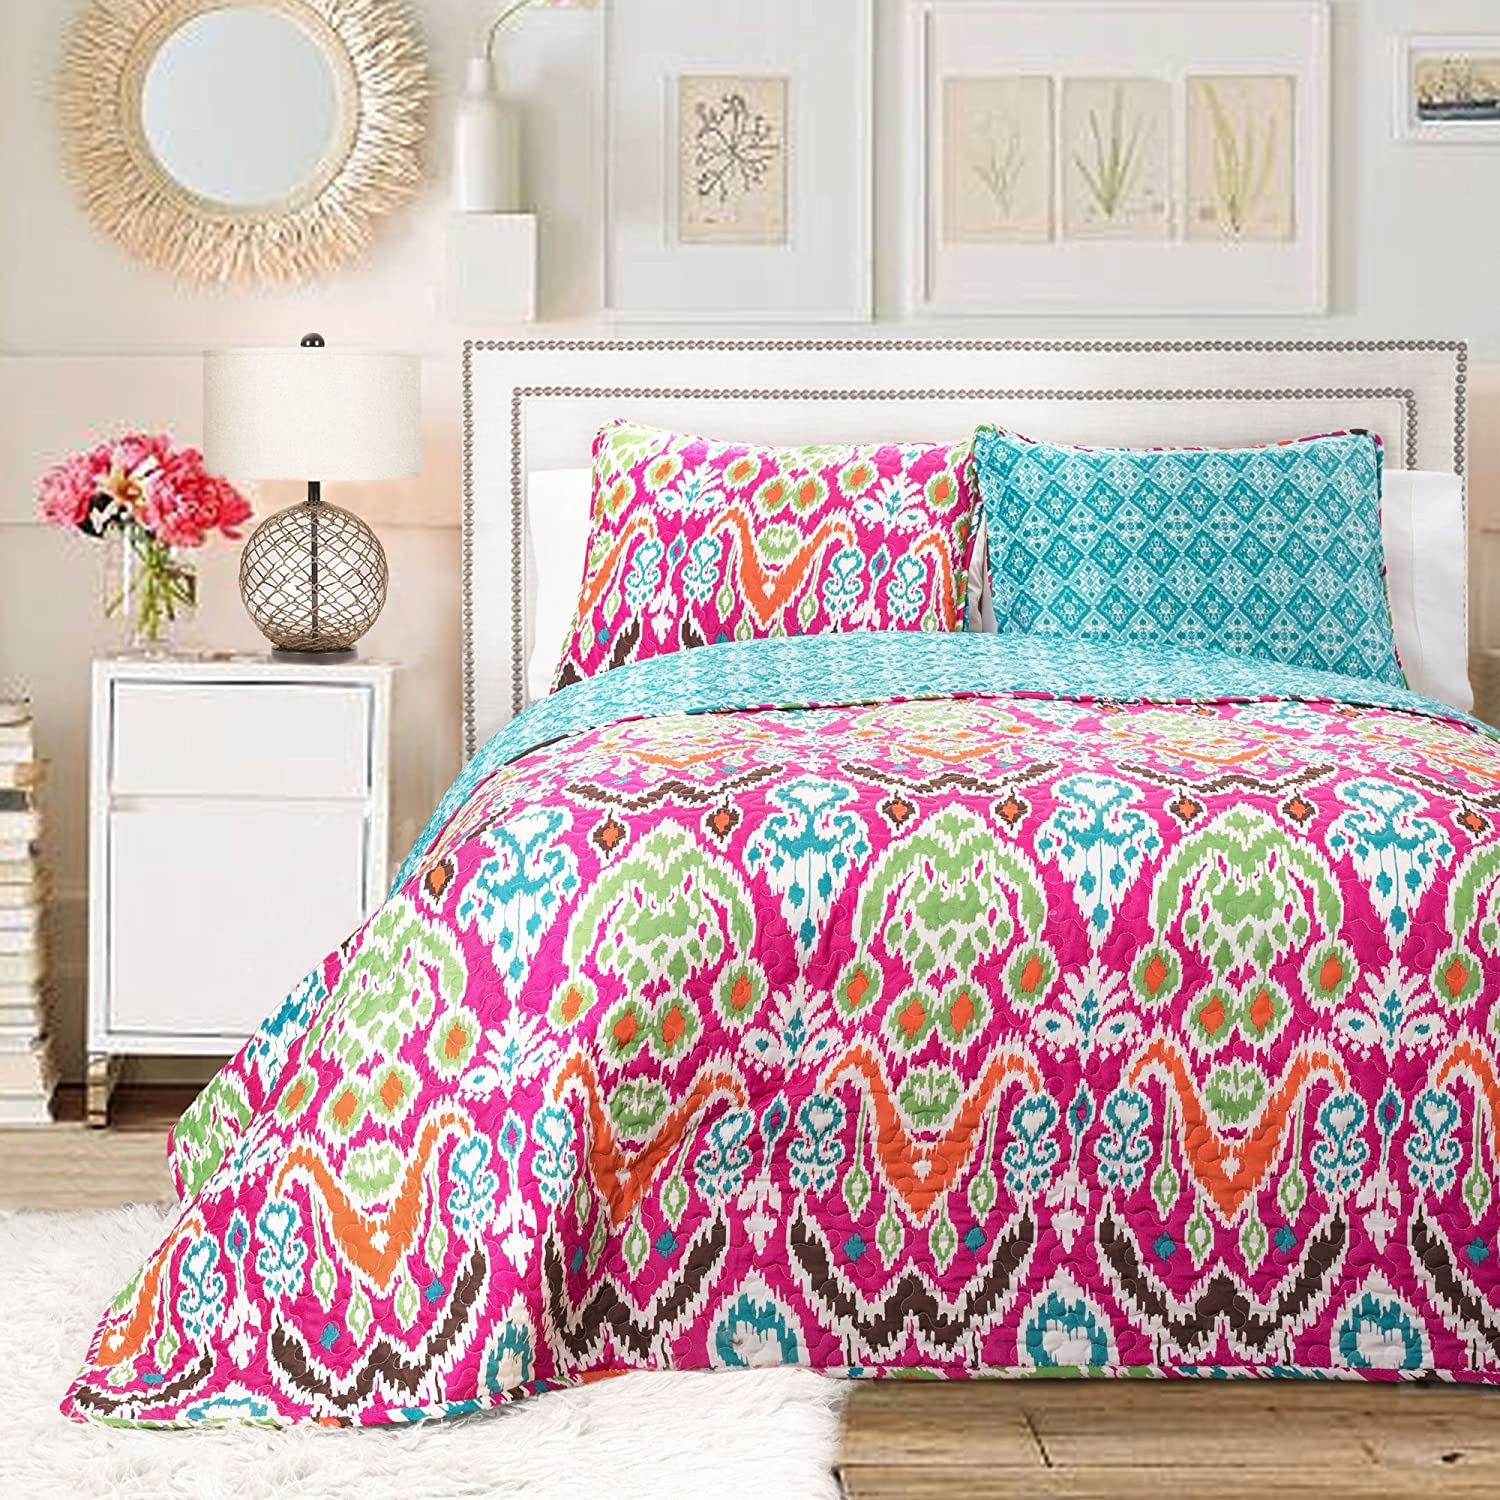 amazoncom lush decor  piece jaipur ikat comforter set king  - amazoncom lush decor  piece jaipur ikat comforter set kingturquoiserust home  kitchen